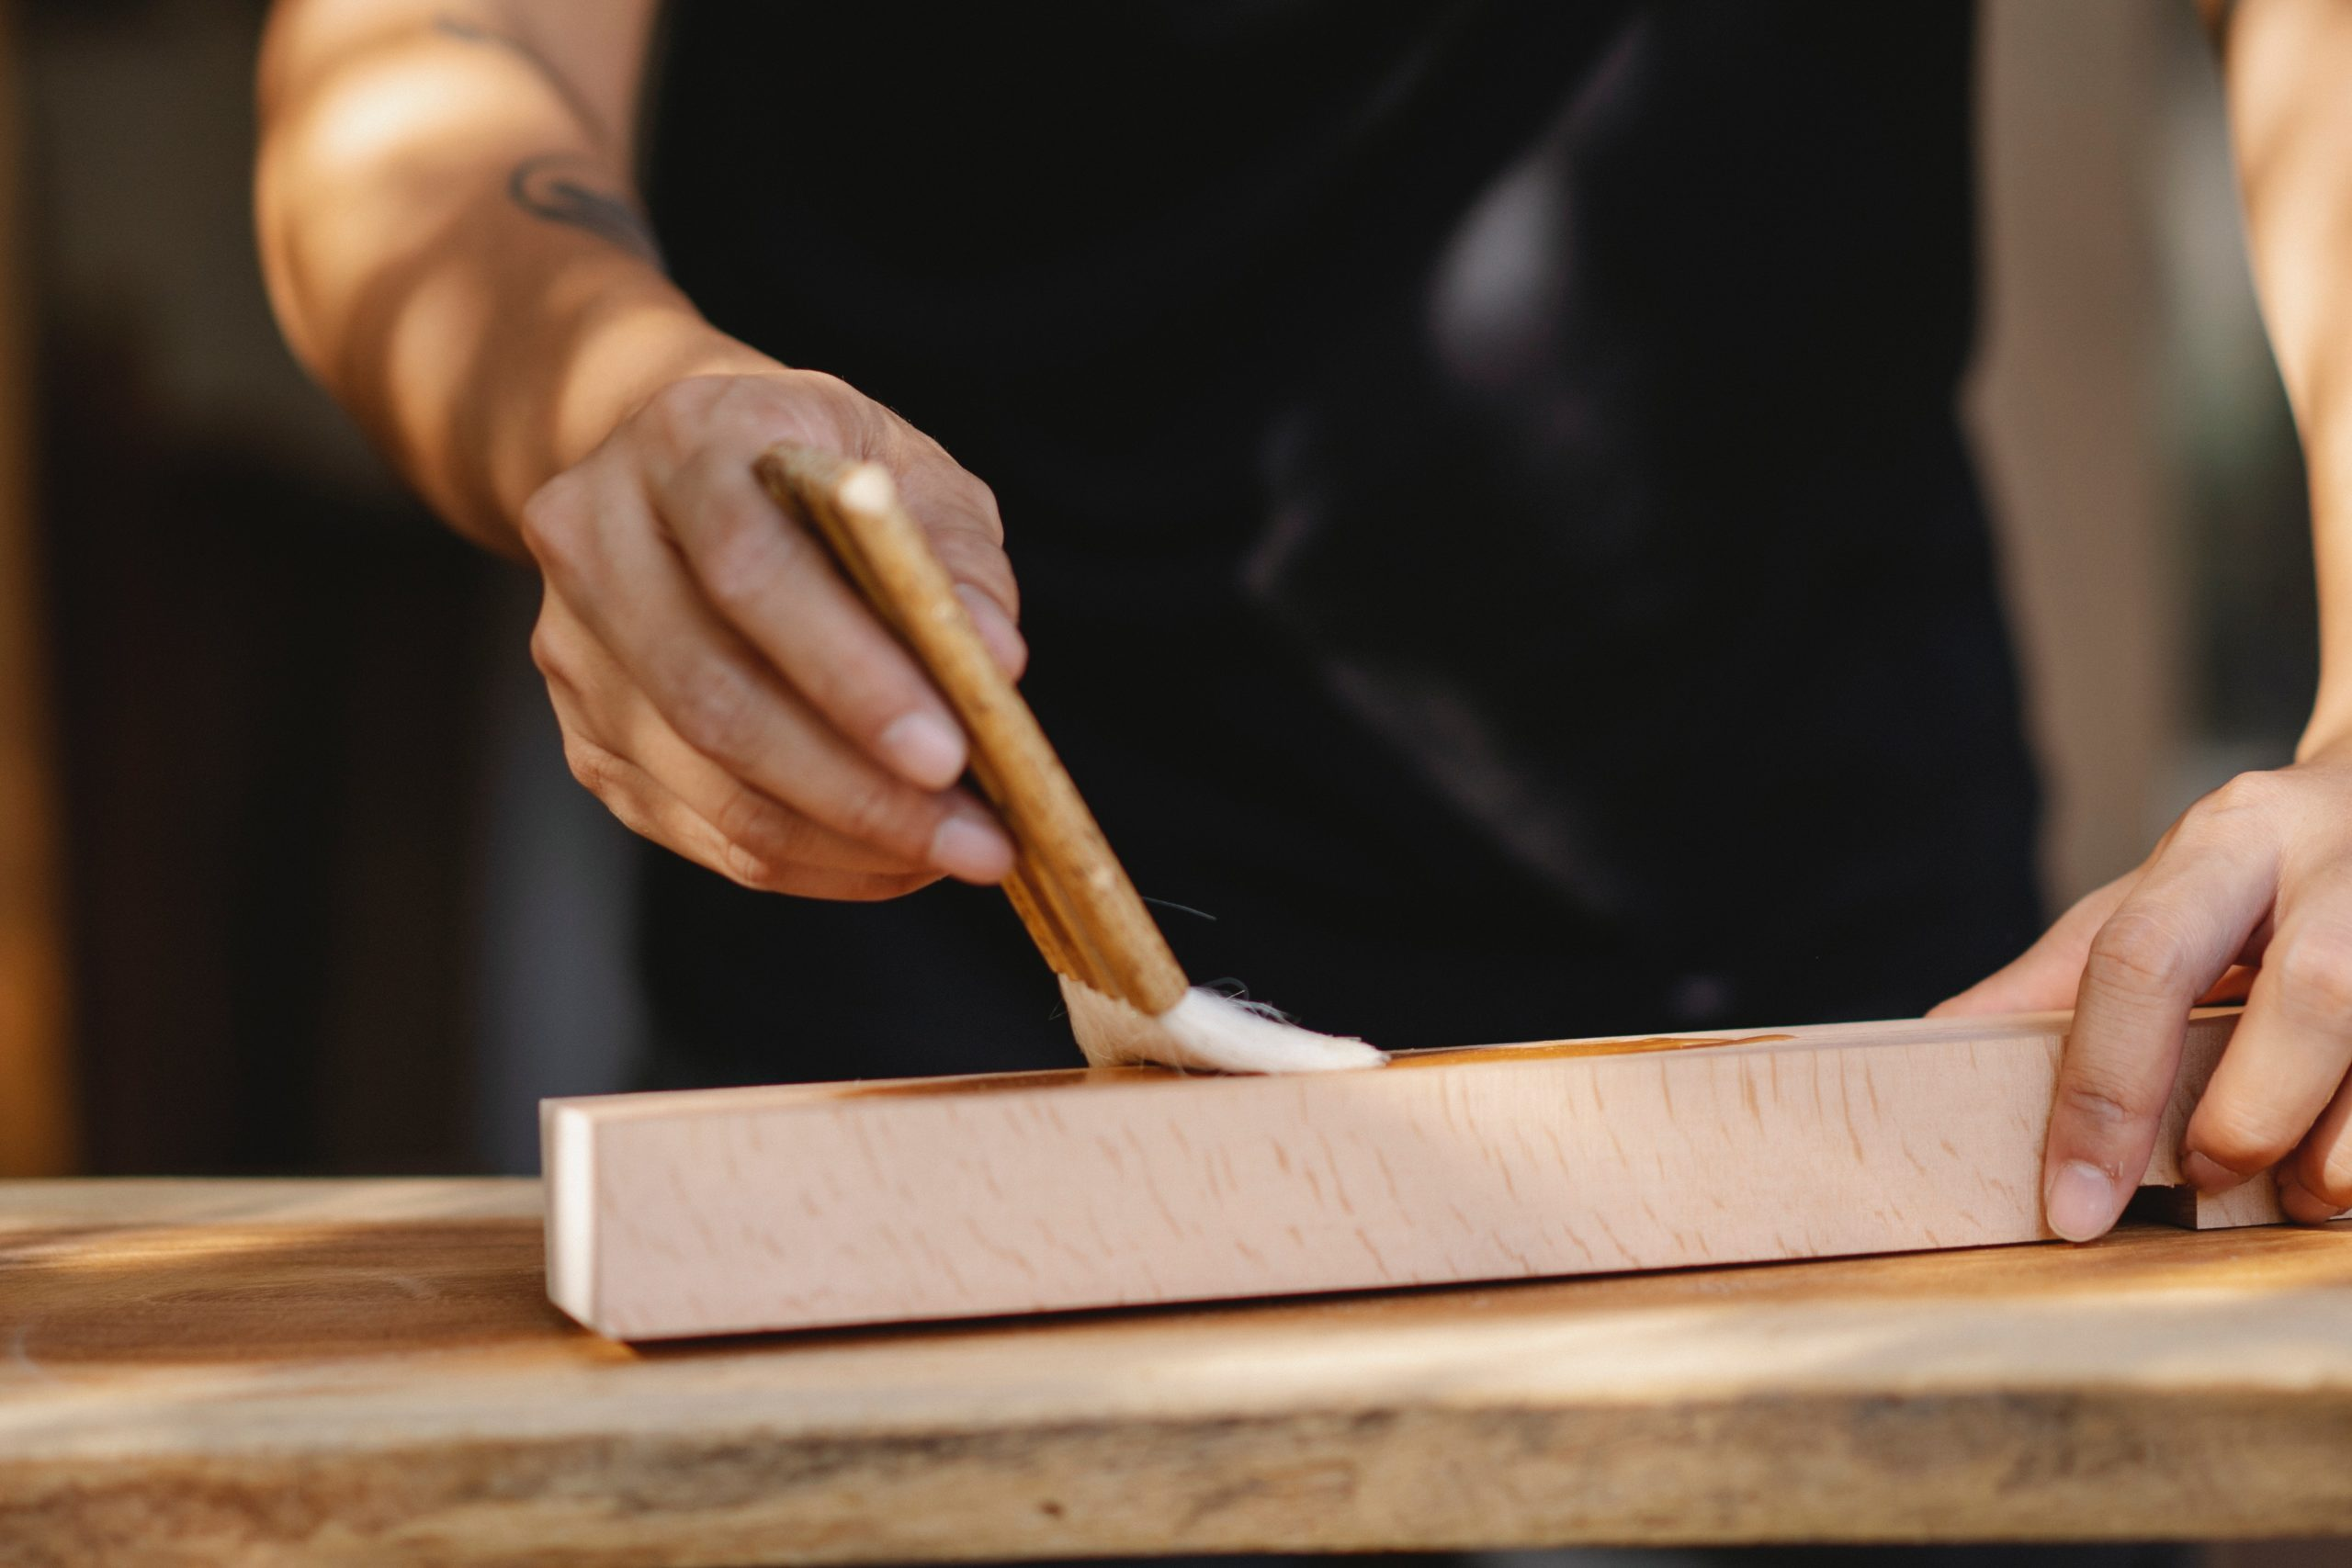 man applying Lacquer iwth a paint brush on a wood surface outside